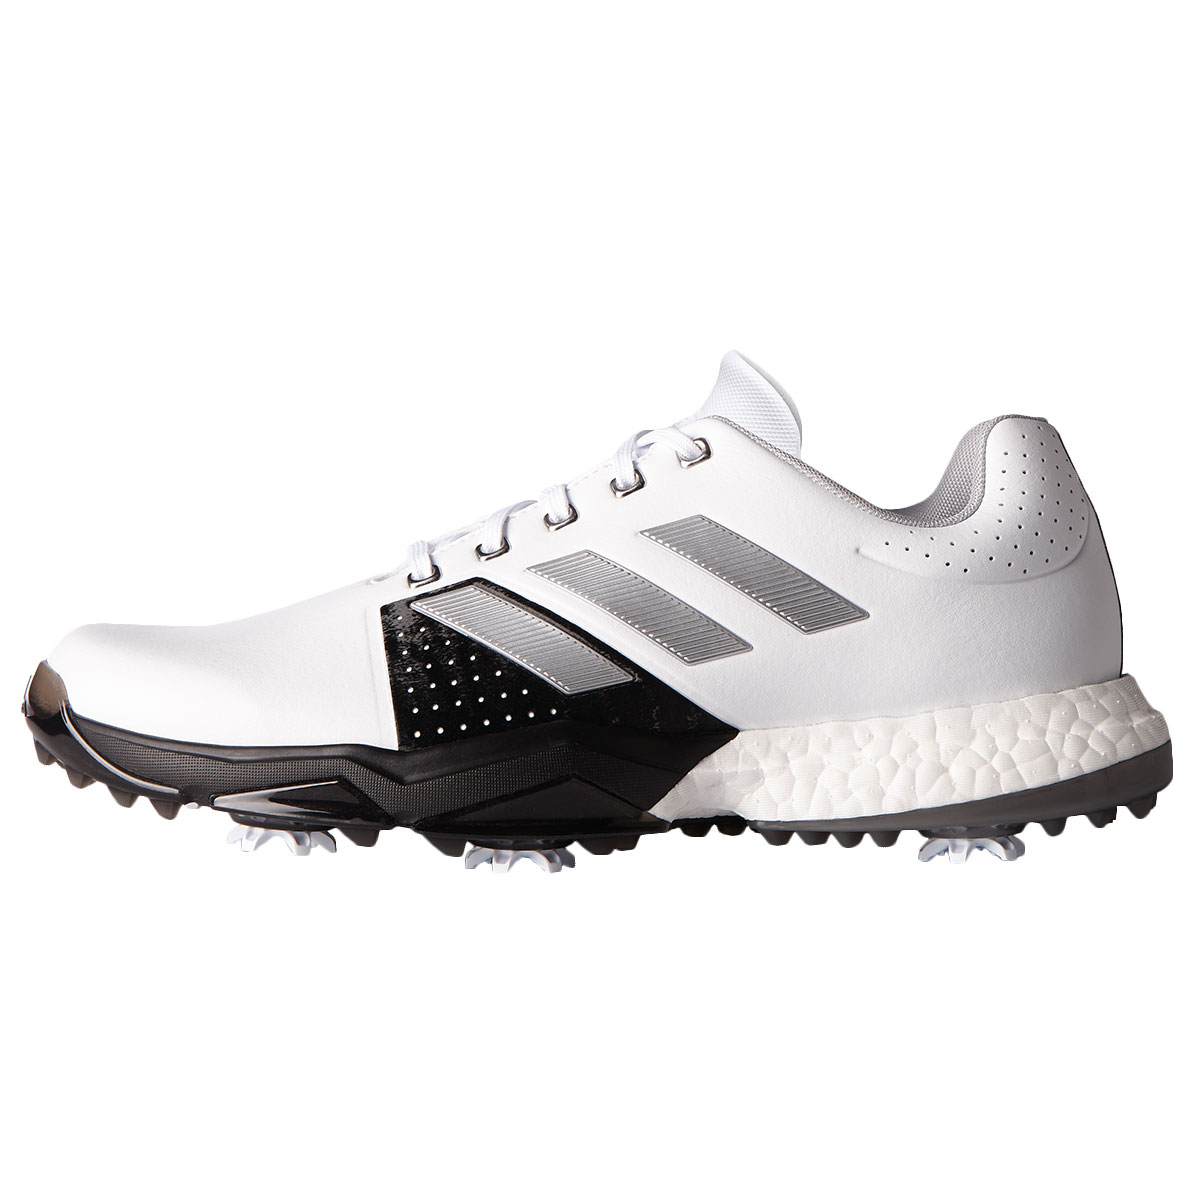 Adidas Golf Shoes Adidas Shoes Online For Sale At Milenarodrigues Com Nmd Superstar Yeezy Stan Smith